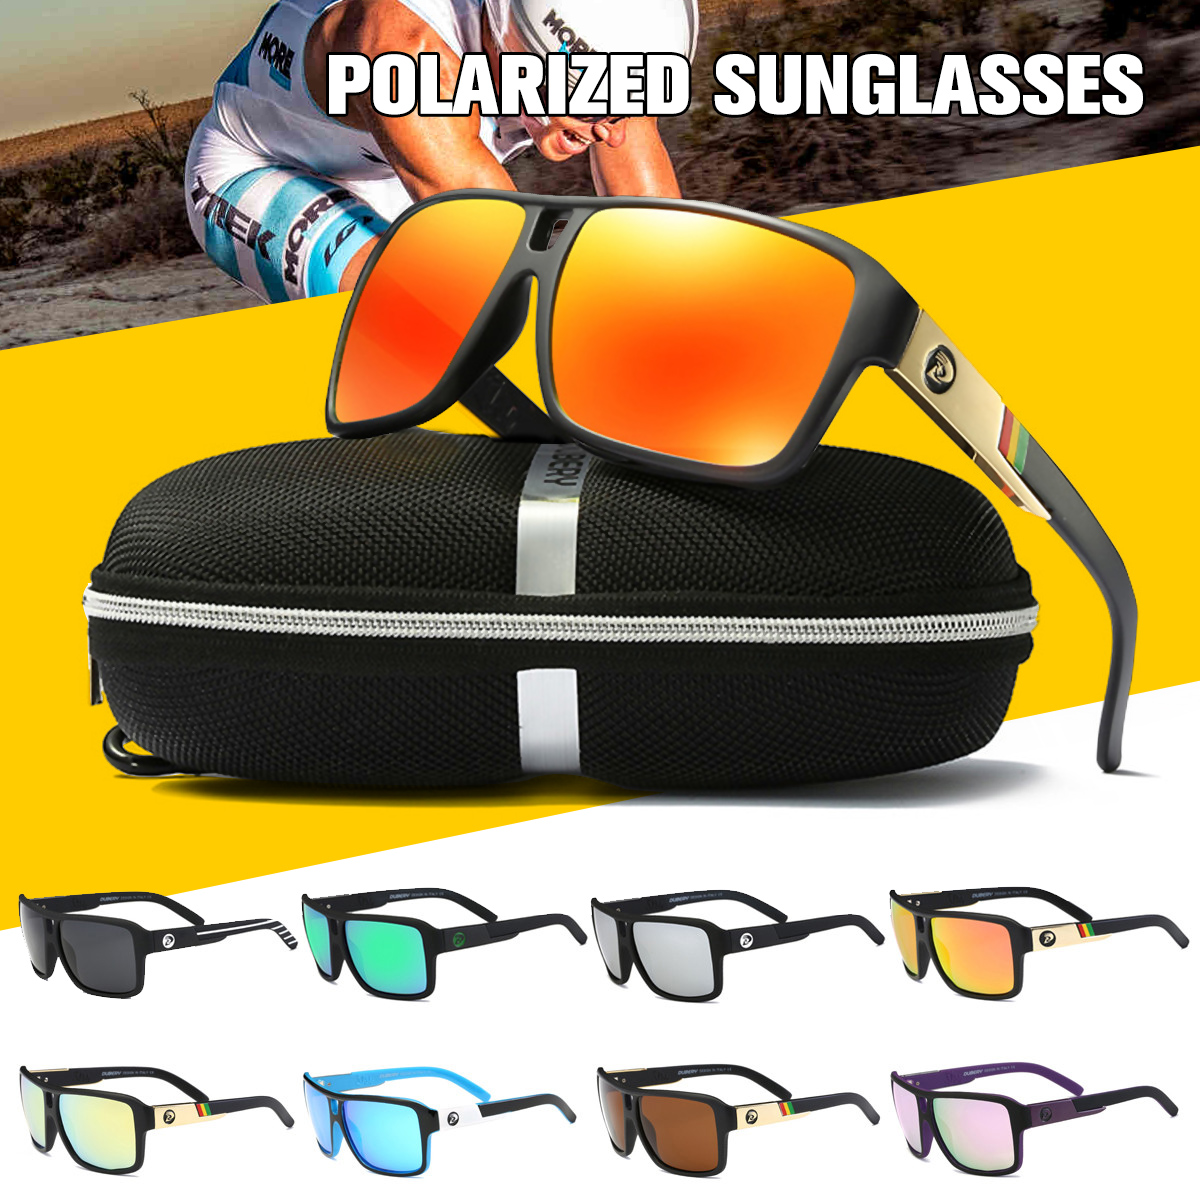 Polarized Sunglasses Square Cycling Sport Driving Men Women Fishing Sun Glasses Traveling Anti-Glare Eyewear Father Gift w/ Box chainsaw module ignition coil wire kit for husqvarna 36 41 136 137 141 142 chainsaw 530039239